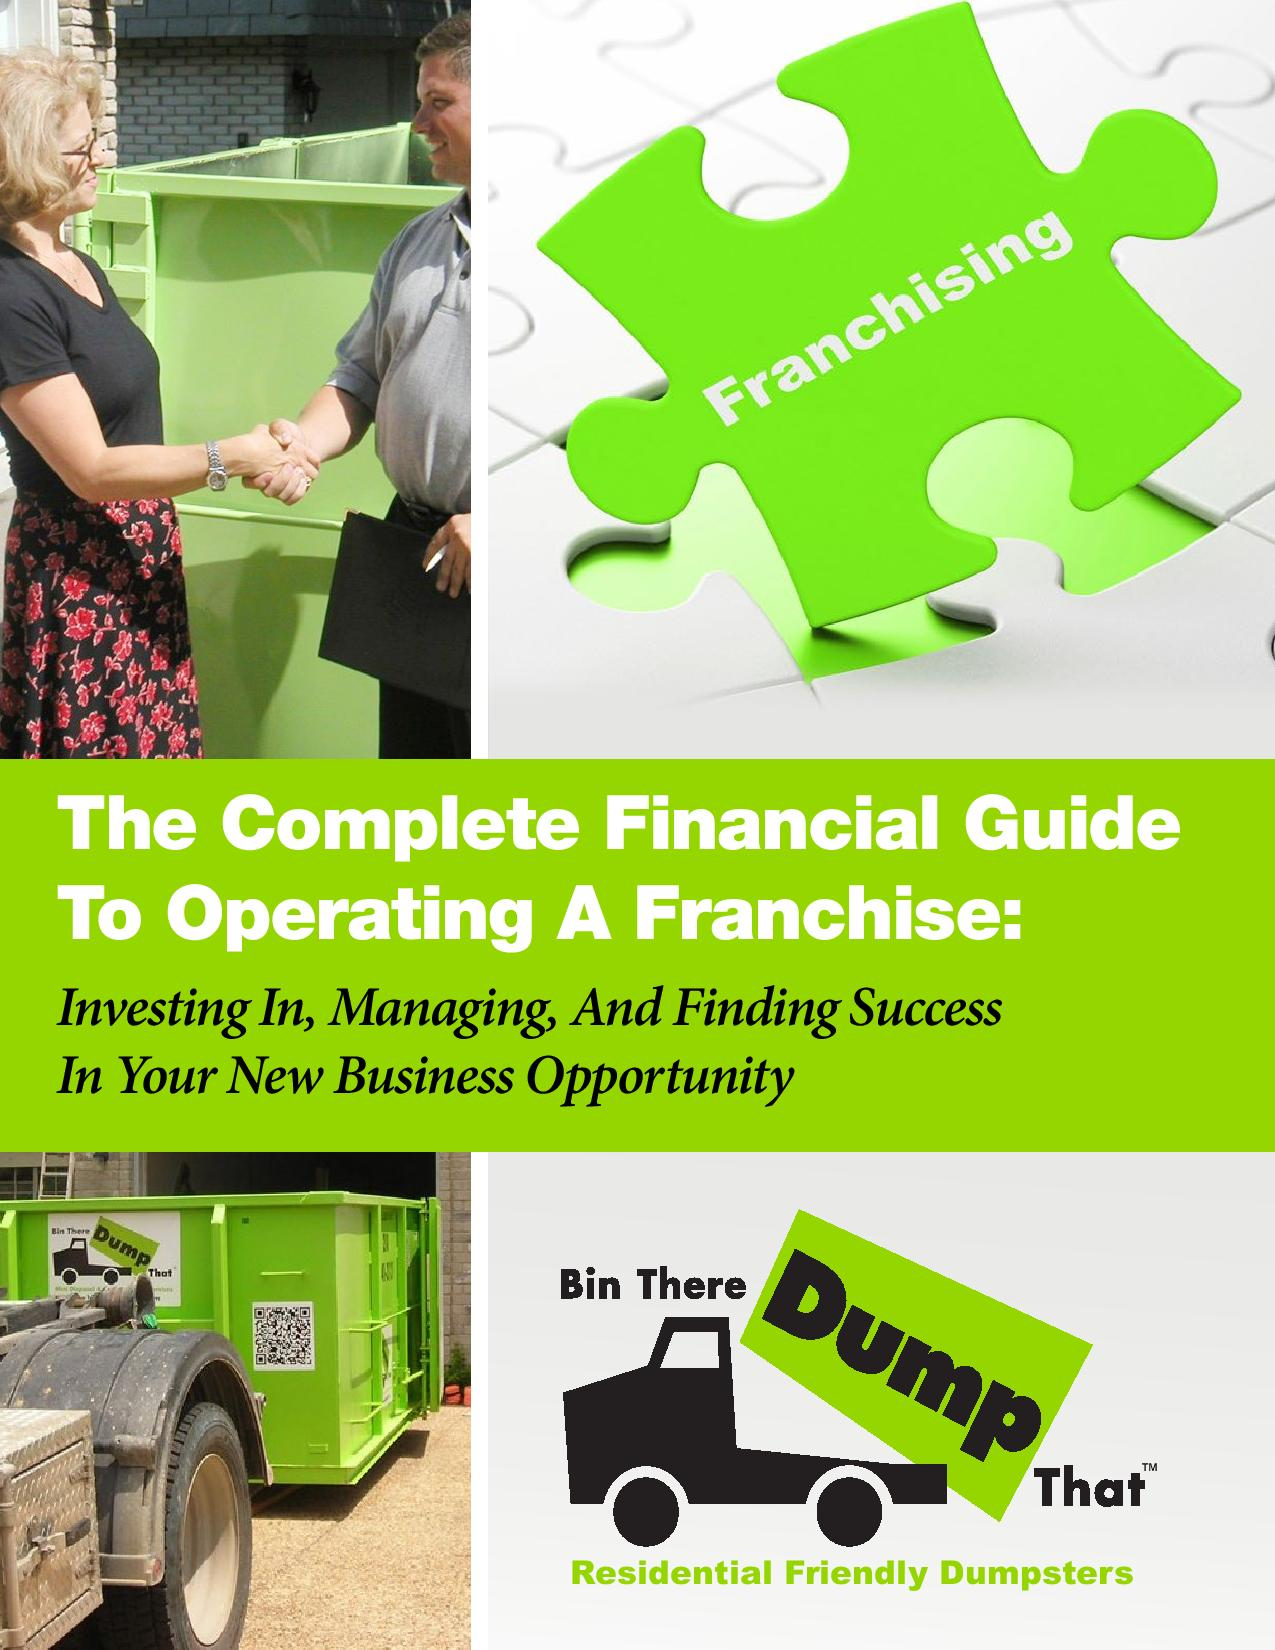 FINAL_Bin_There_DumpThat_Complete_Guide_to_Operating_a_Franchise-page-001.jpg